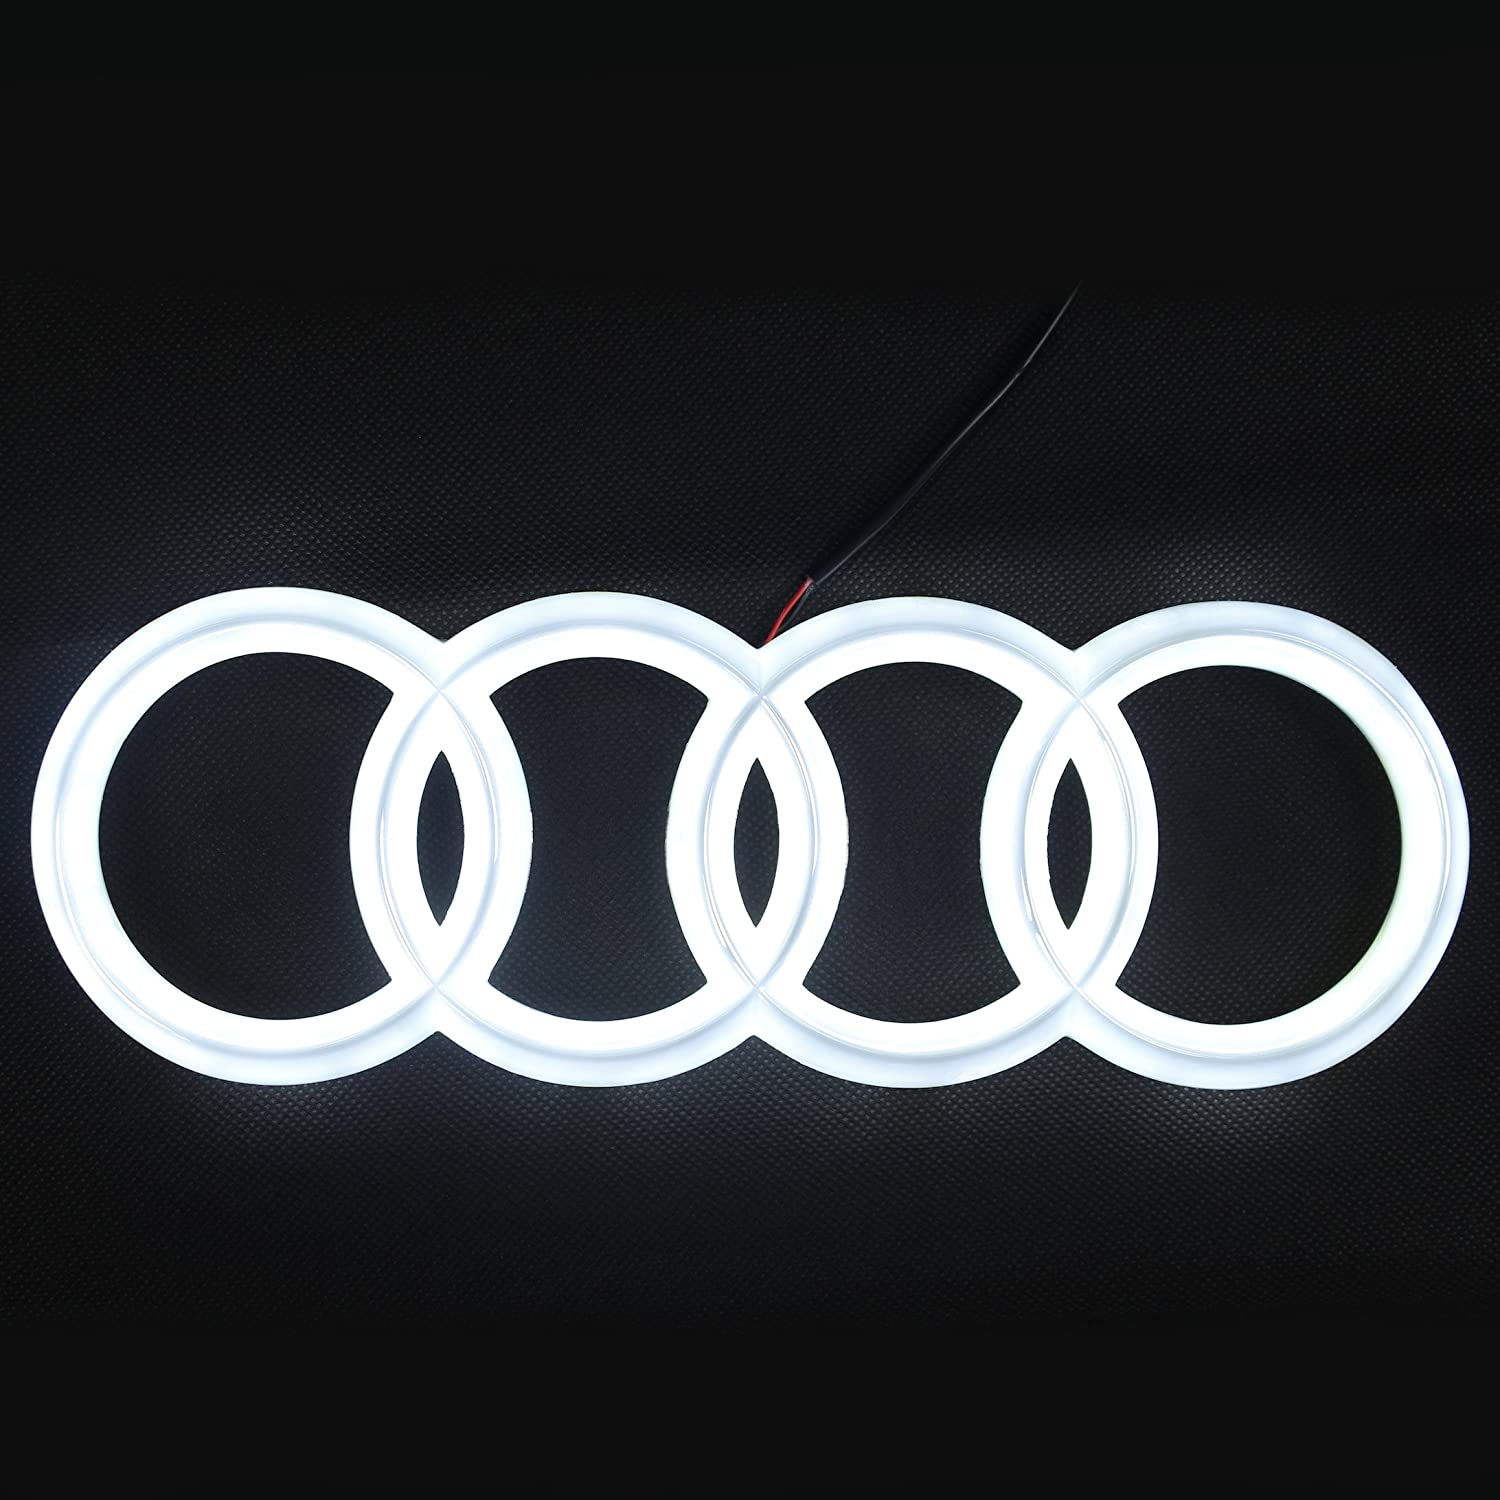 Glowing Rings Front Car Grill Badge Audi LED Emblem Drive Brighter /… 285 mm Lights DRL Daytime Running Lights White 2018 Upgraded Auto Illuminated Logo JetStyle